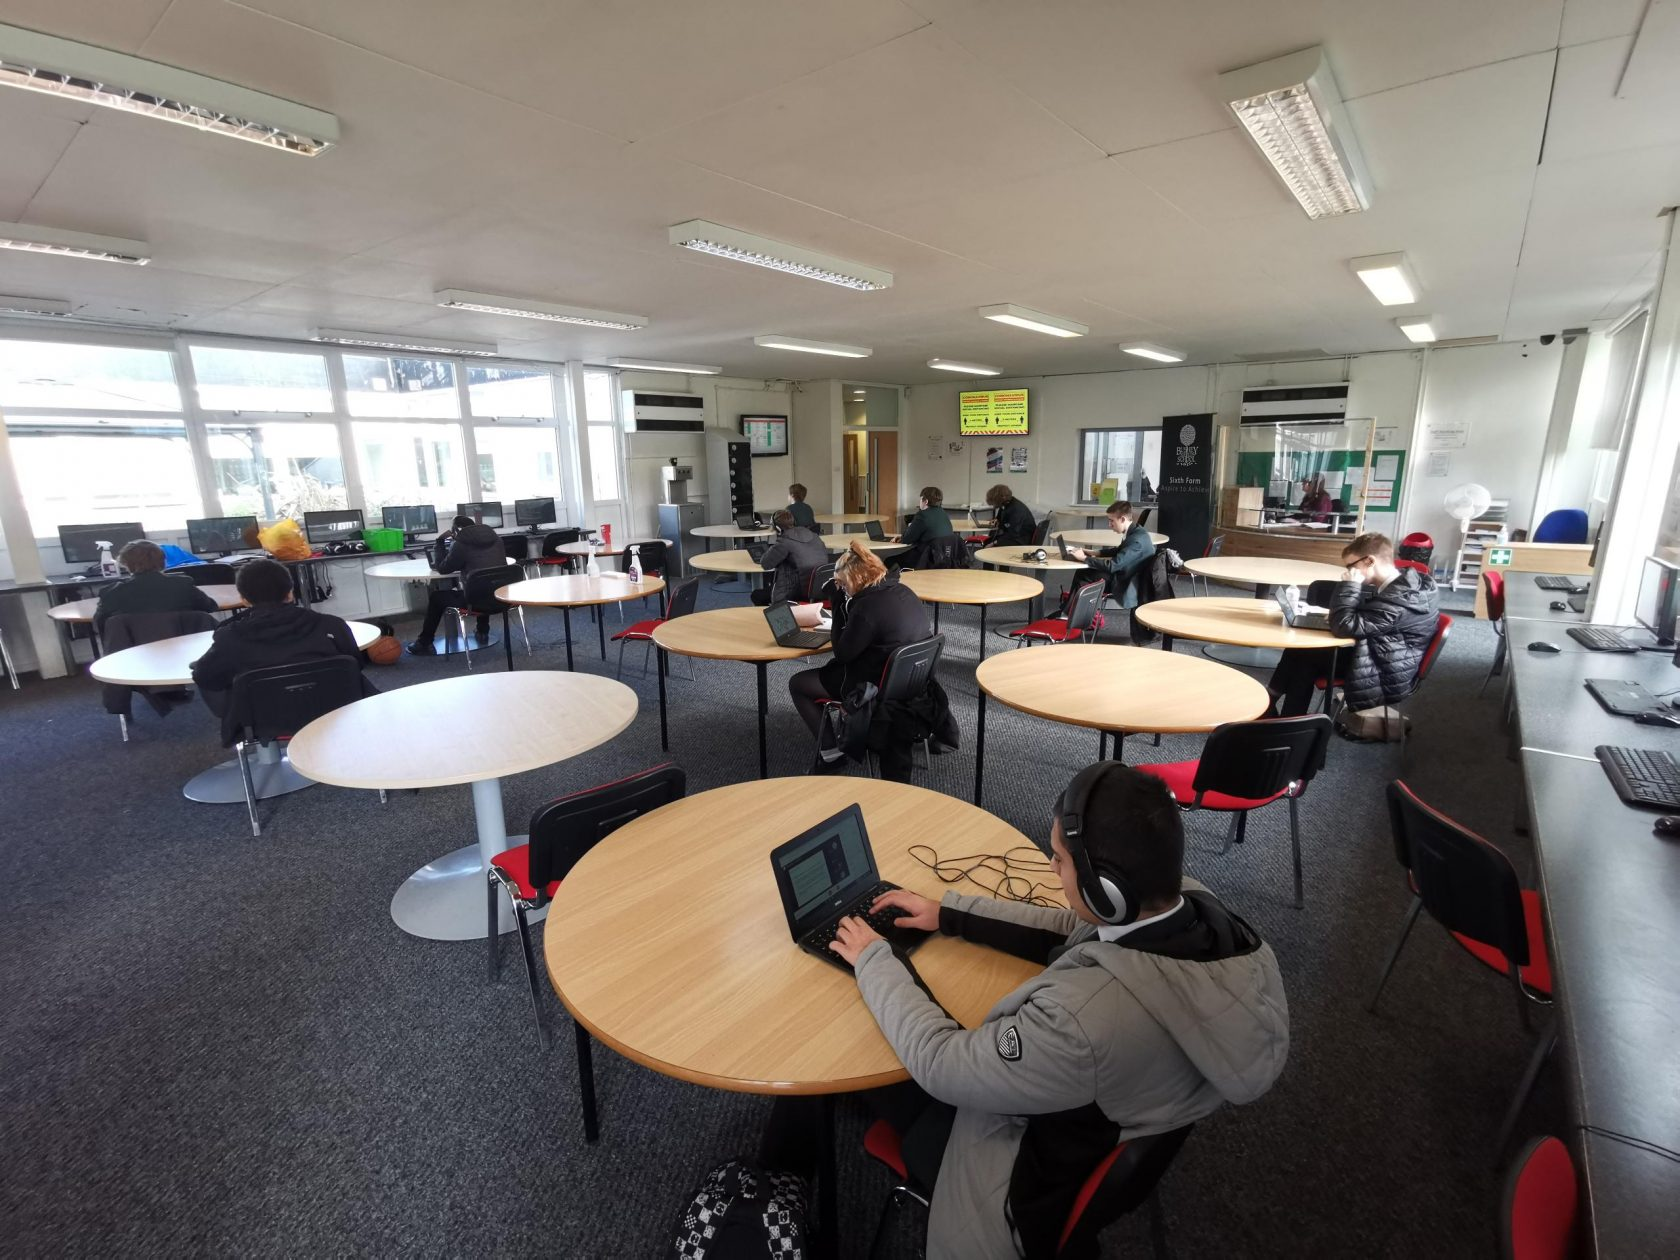 Year 11 students get a taste of the 'Outstanding' BMS Sixth Form